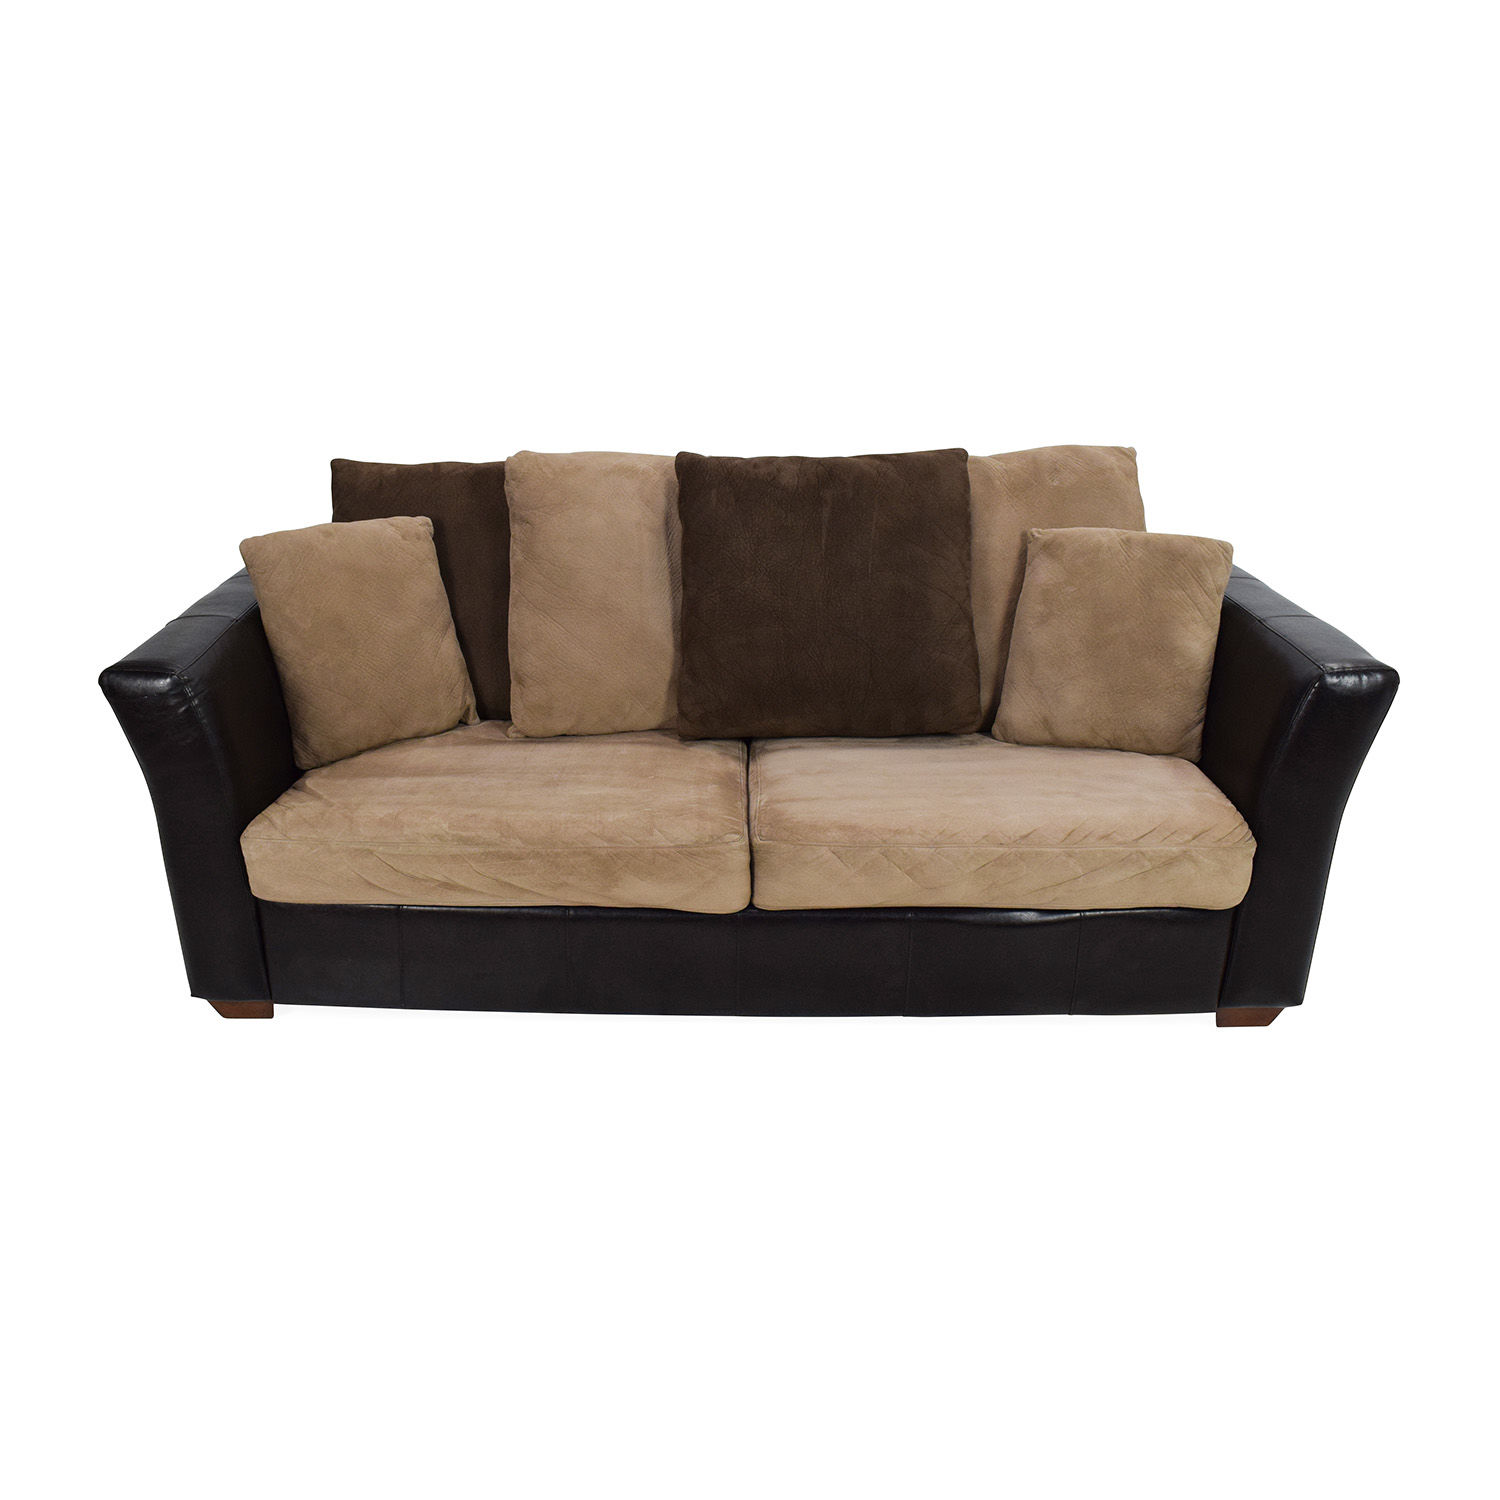 unique jennifer convertibles sofa gallery-Best Of Jennifer Convertibles sofa Plan